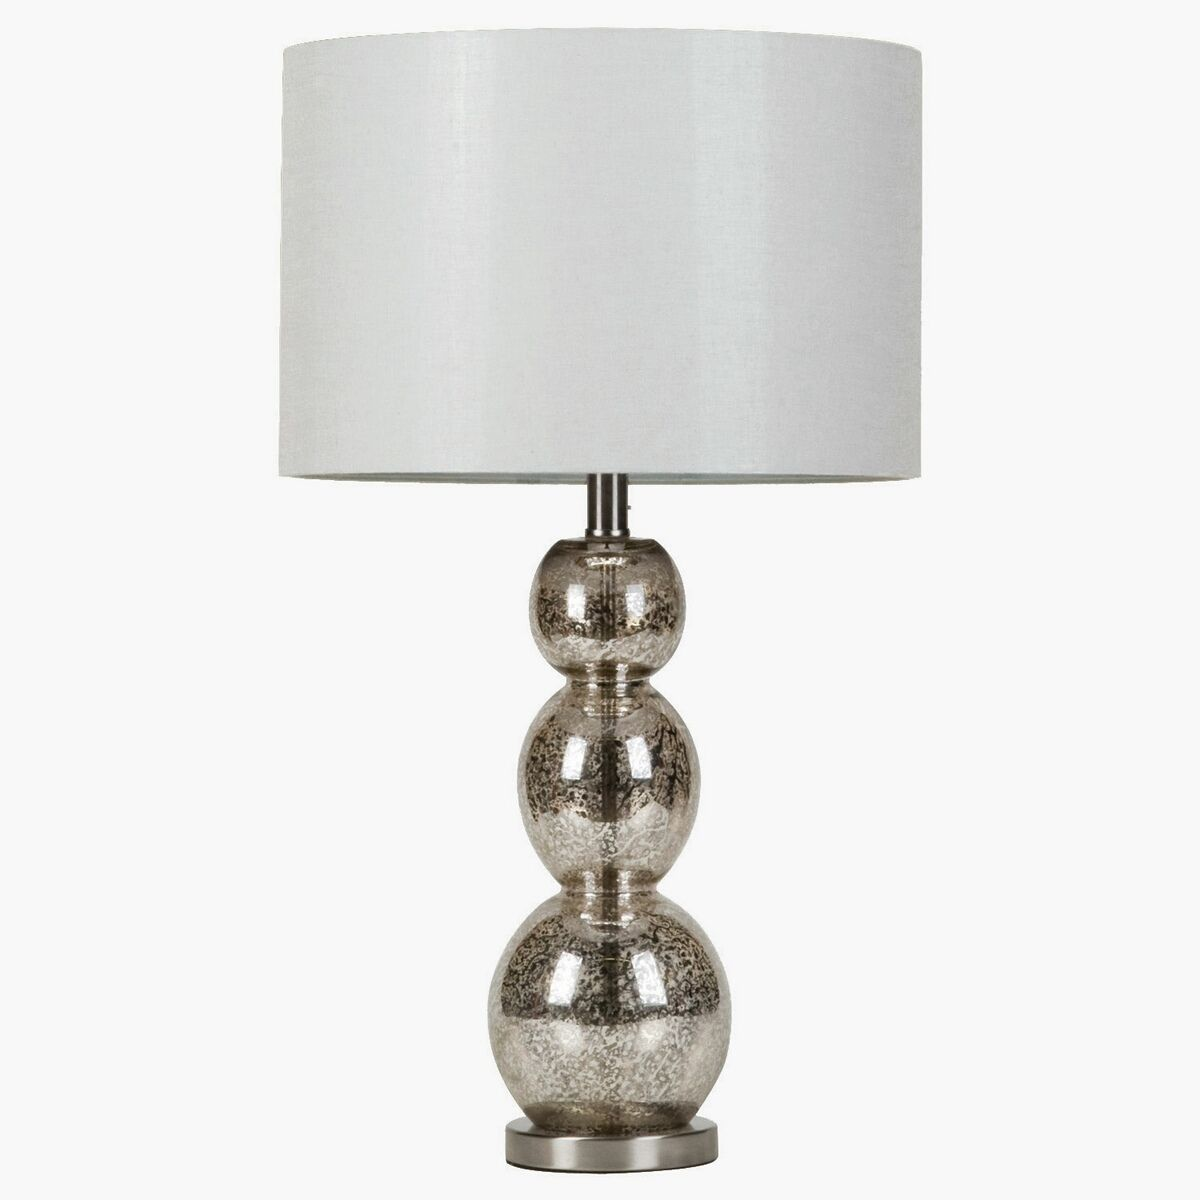 Contemporary Style Mottled Tortoiseshell Finish Table Lamp With 2 Way Bulb Switch This Metallic Features A Uniquely Shaped Base And Mottle The Has Light